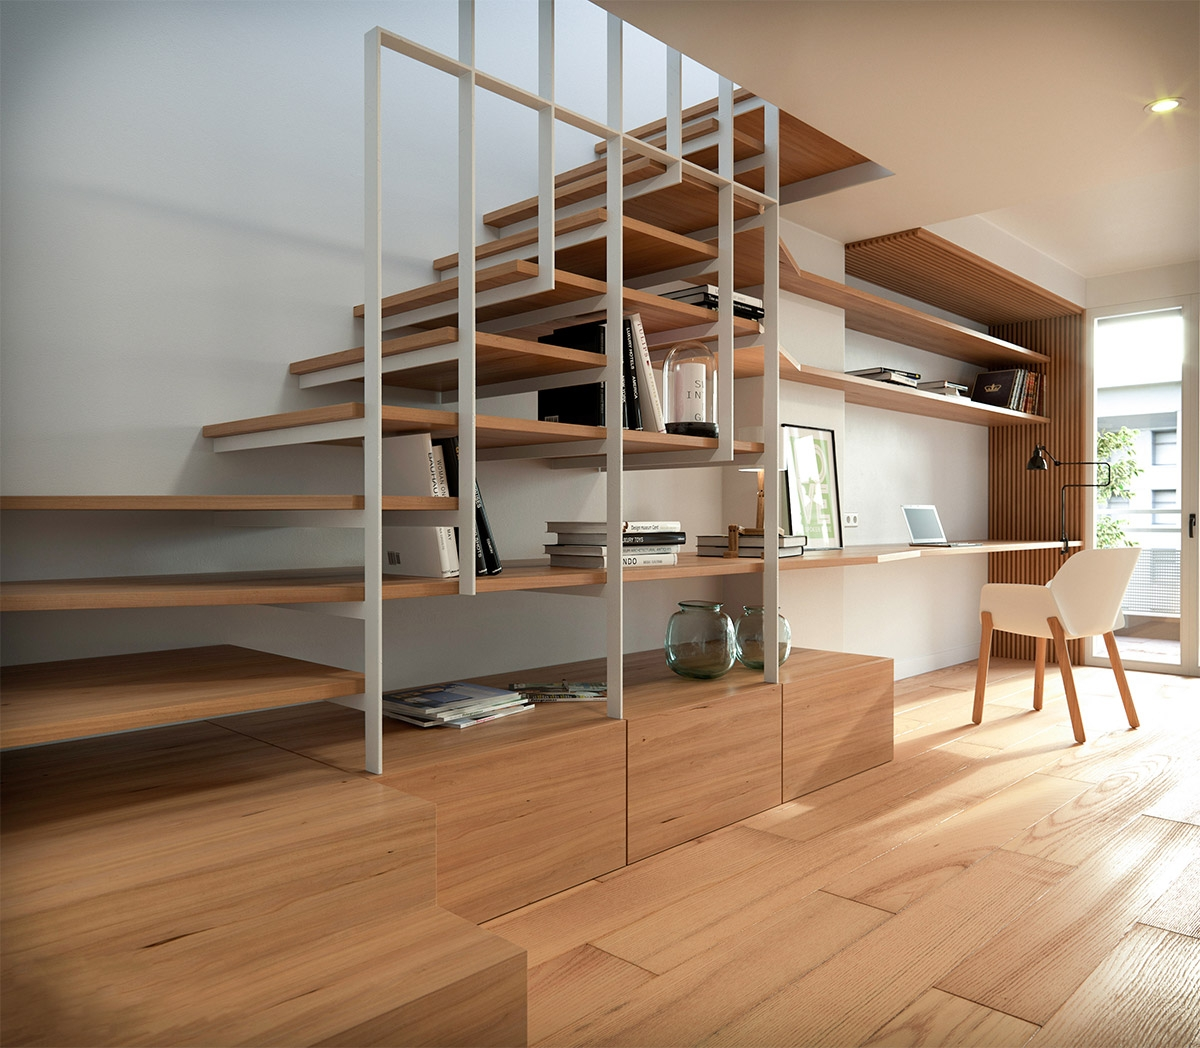 51 Stunning Staircase Design Ideas | Simple Designs Of Stairs Inside House | Cheap | Fancy House | Ultra Modern | Space | Hidden